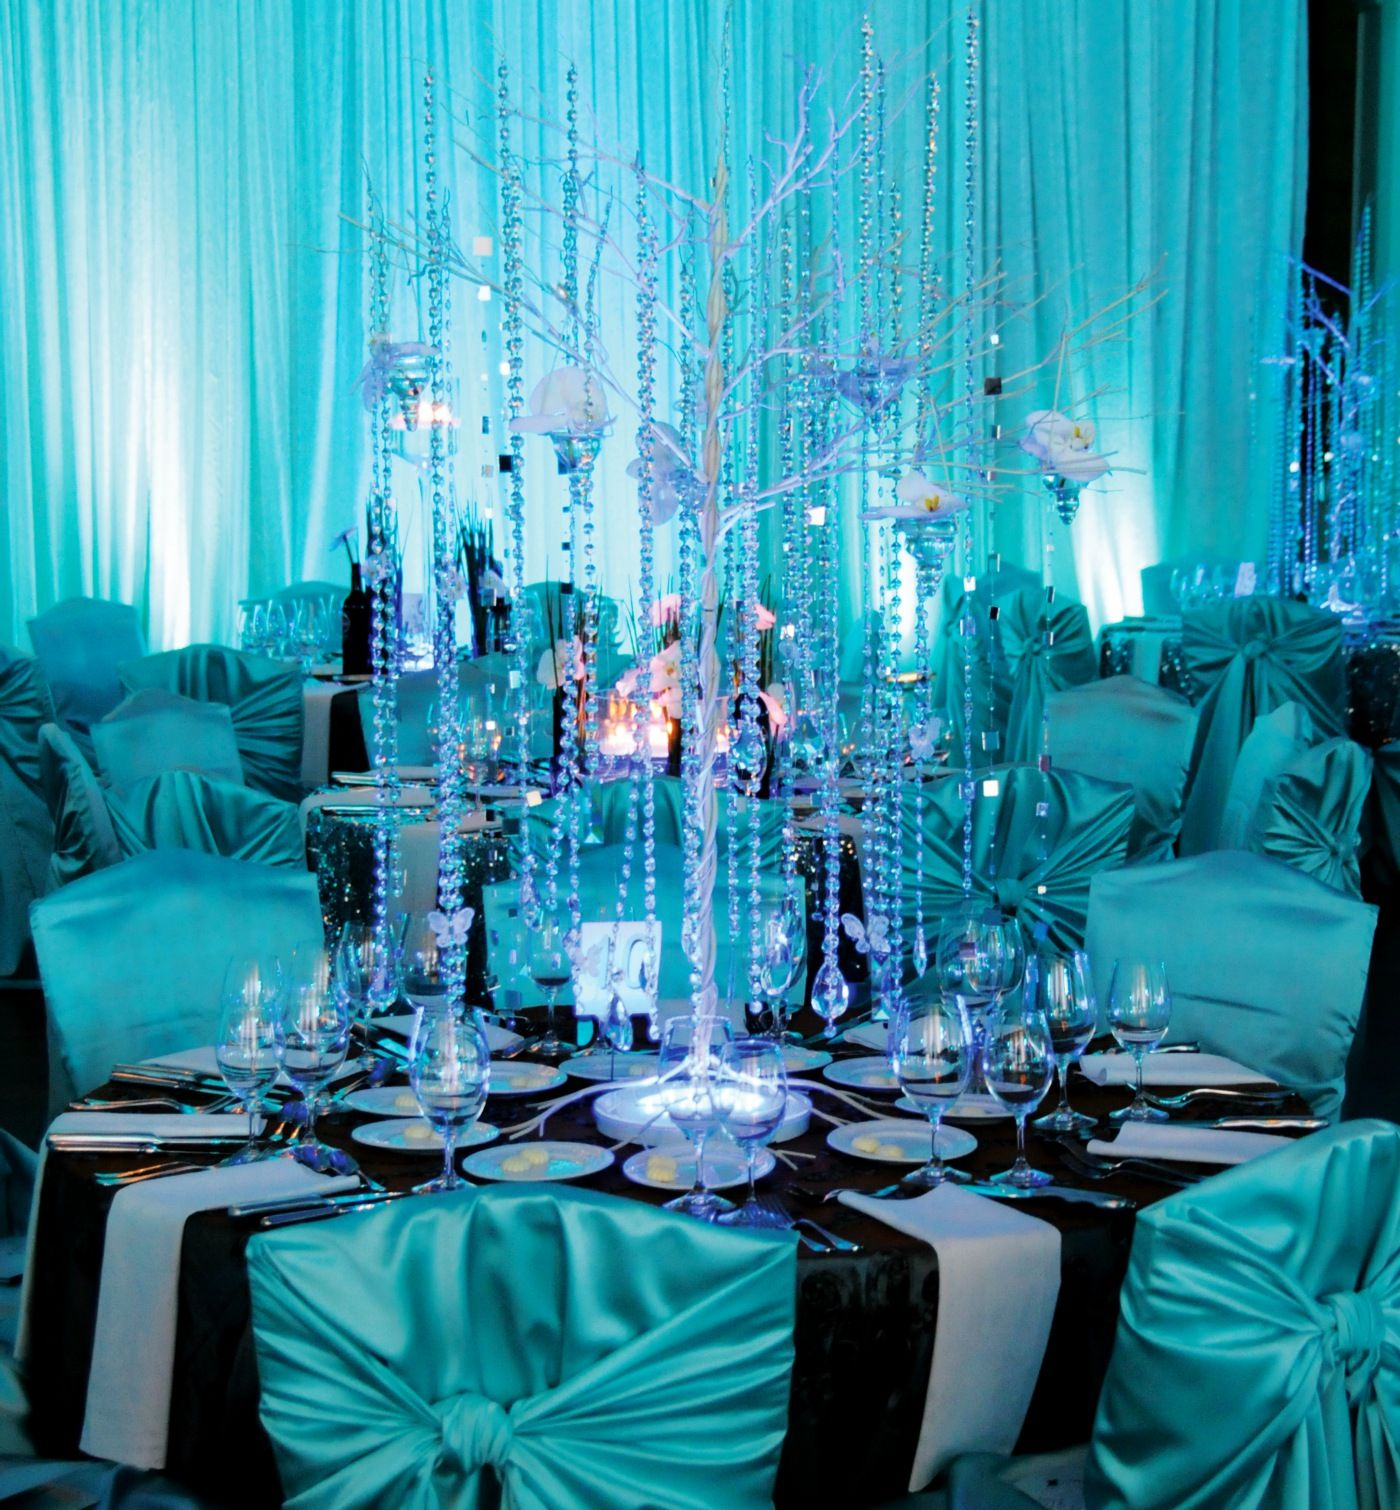 Teal Wedding Ideas For Reception: Tiffany Blue With Black & White /// #sparkle #tree